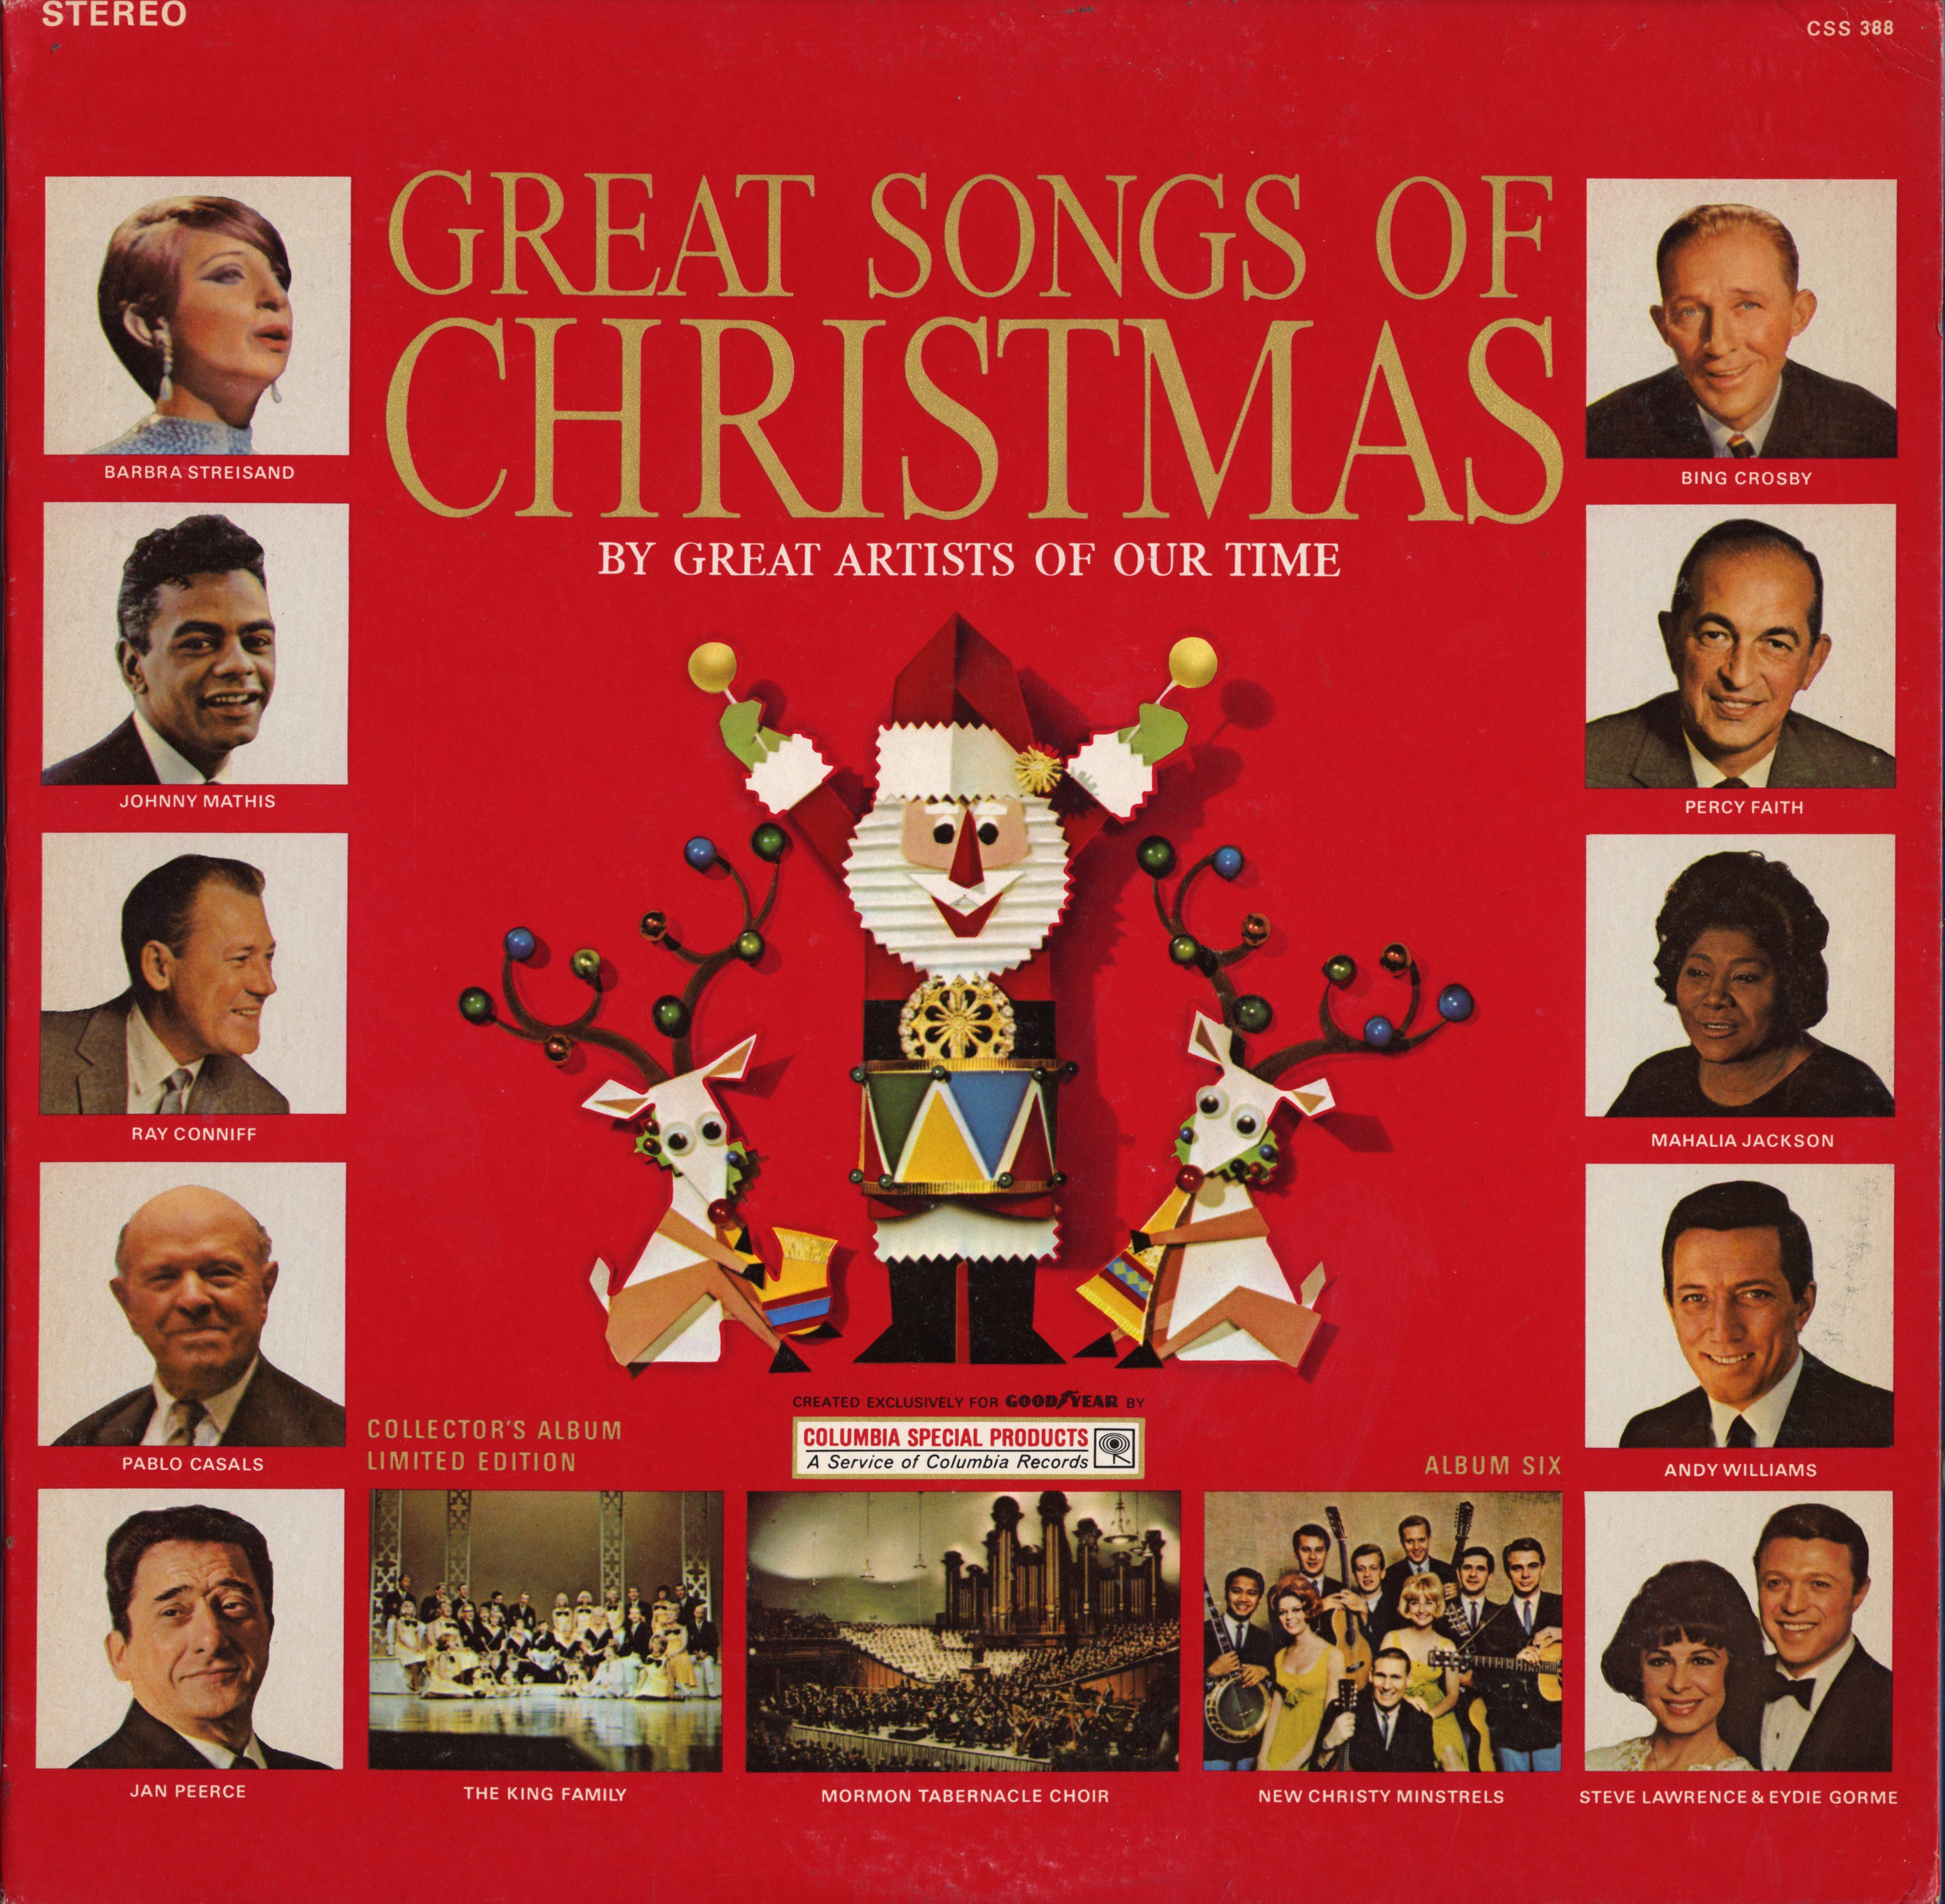 My alltime favorite Christmas album! Crazy About